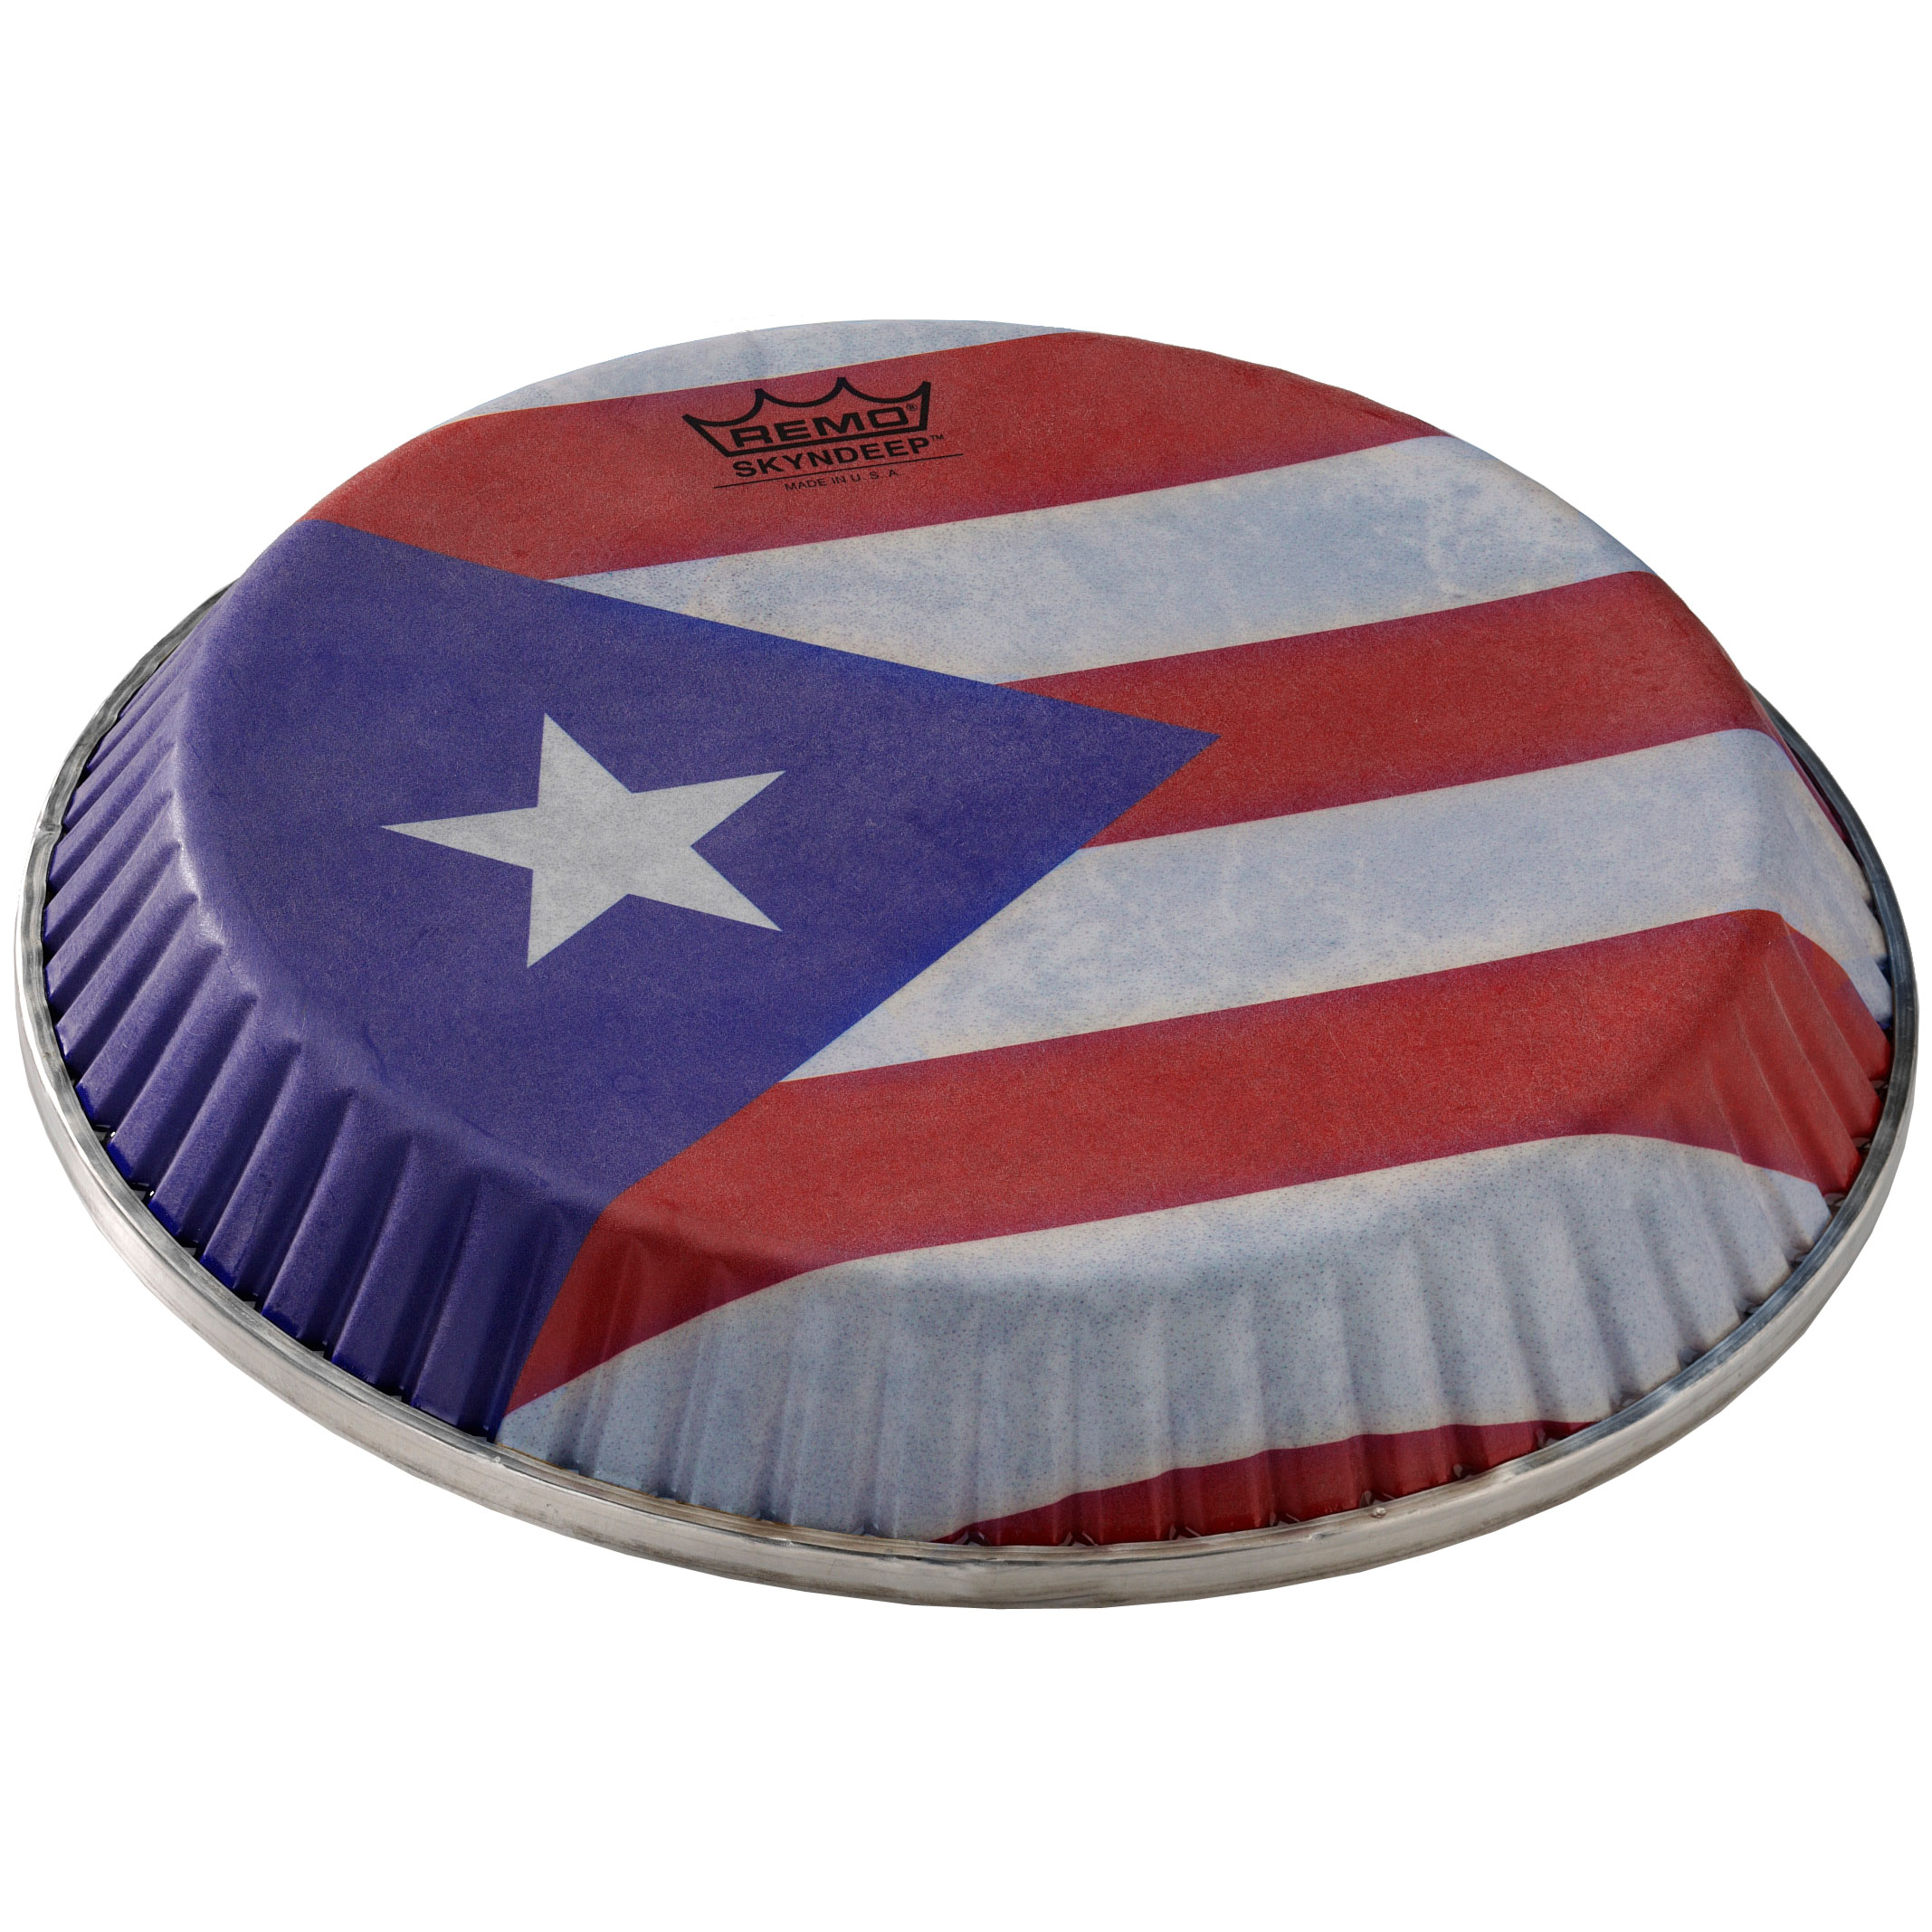 "Remo 11.06"" Symmetry Skyndeep Conga Drum Head (D1 Collar) with Puerto Rican Flag Graphic"